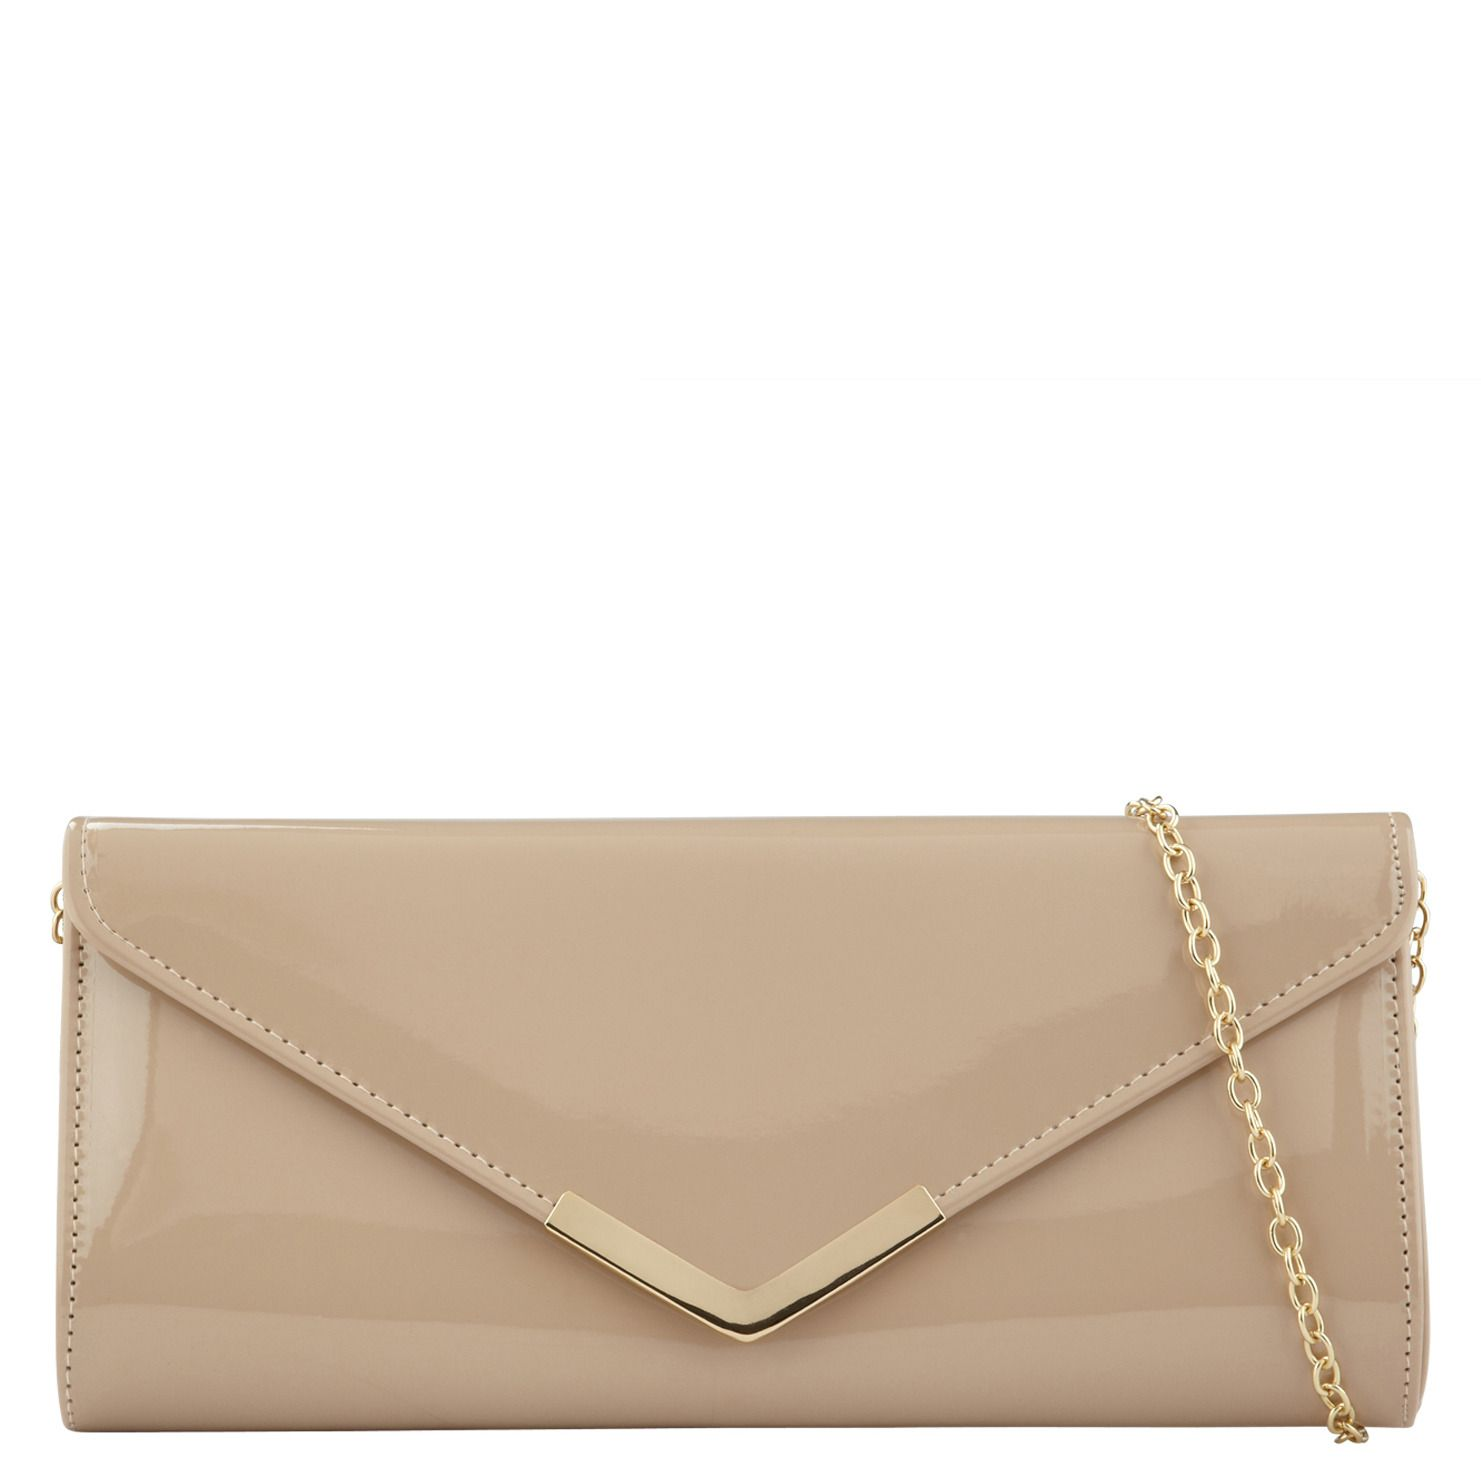 Finest Nude Clutch Bags Pictures